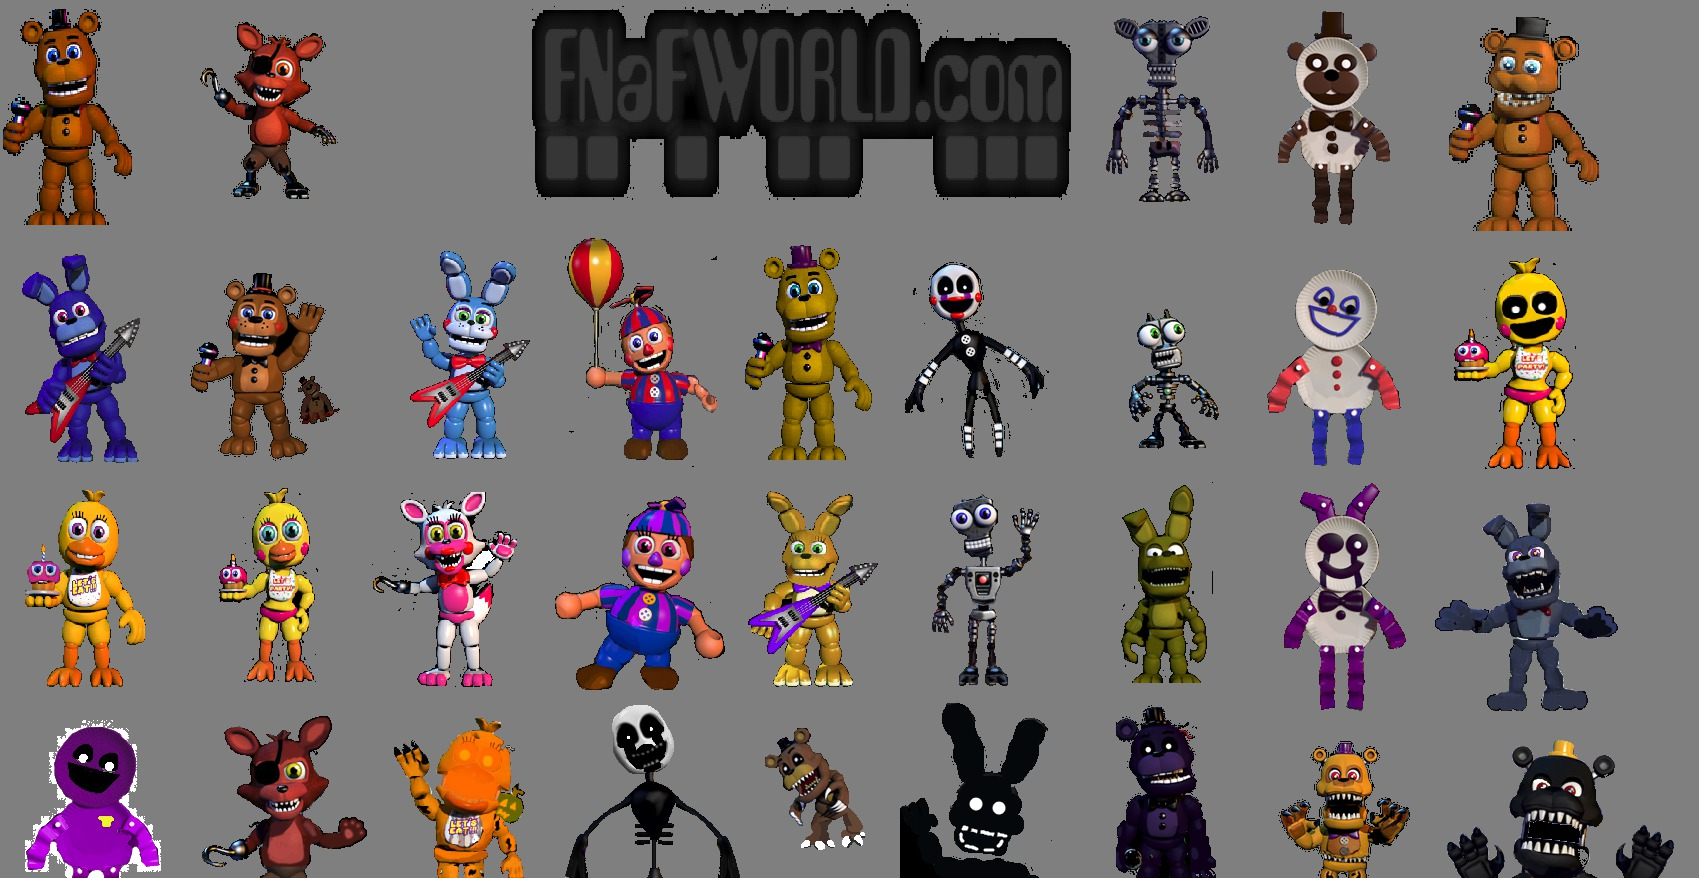 5 nights at freddys character list